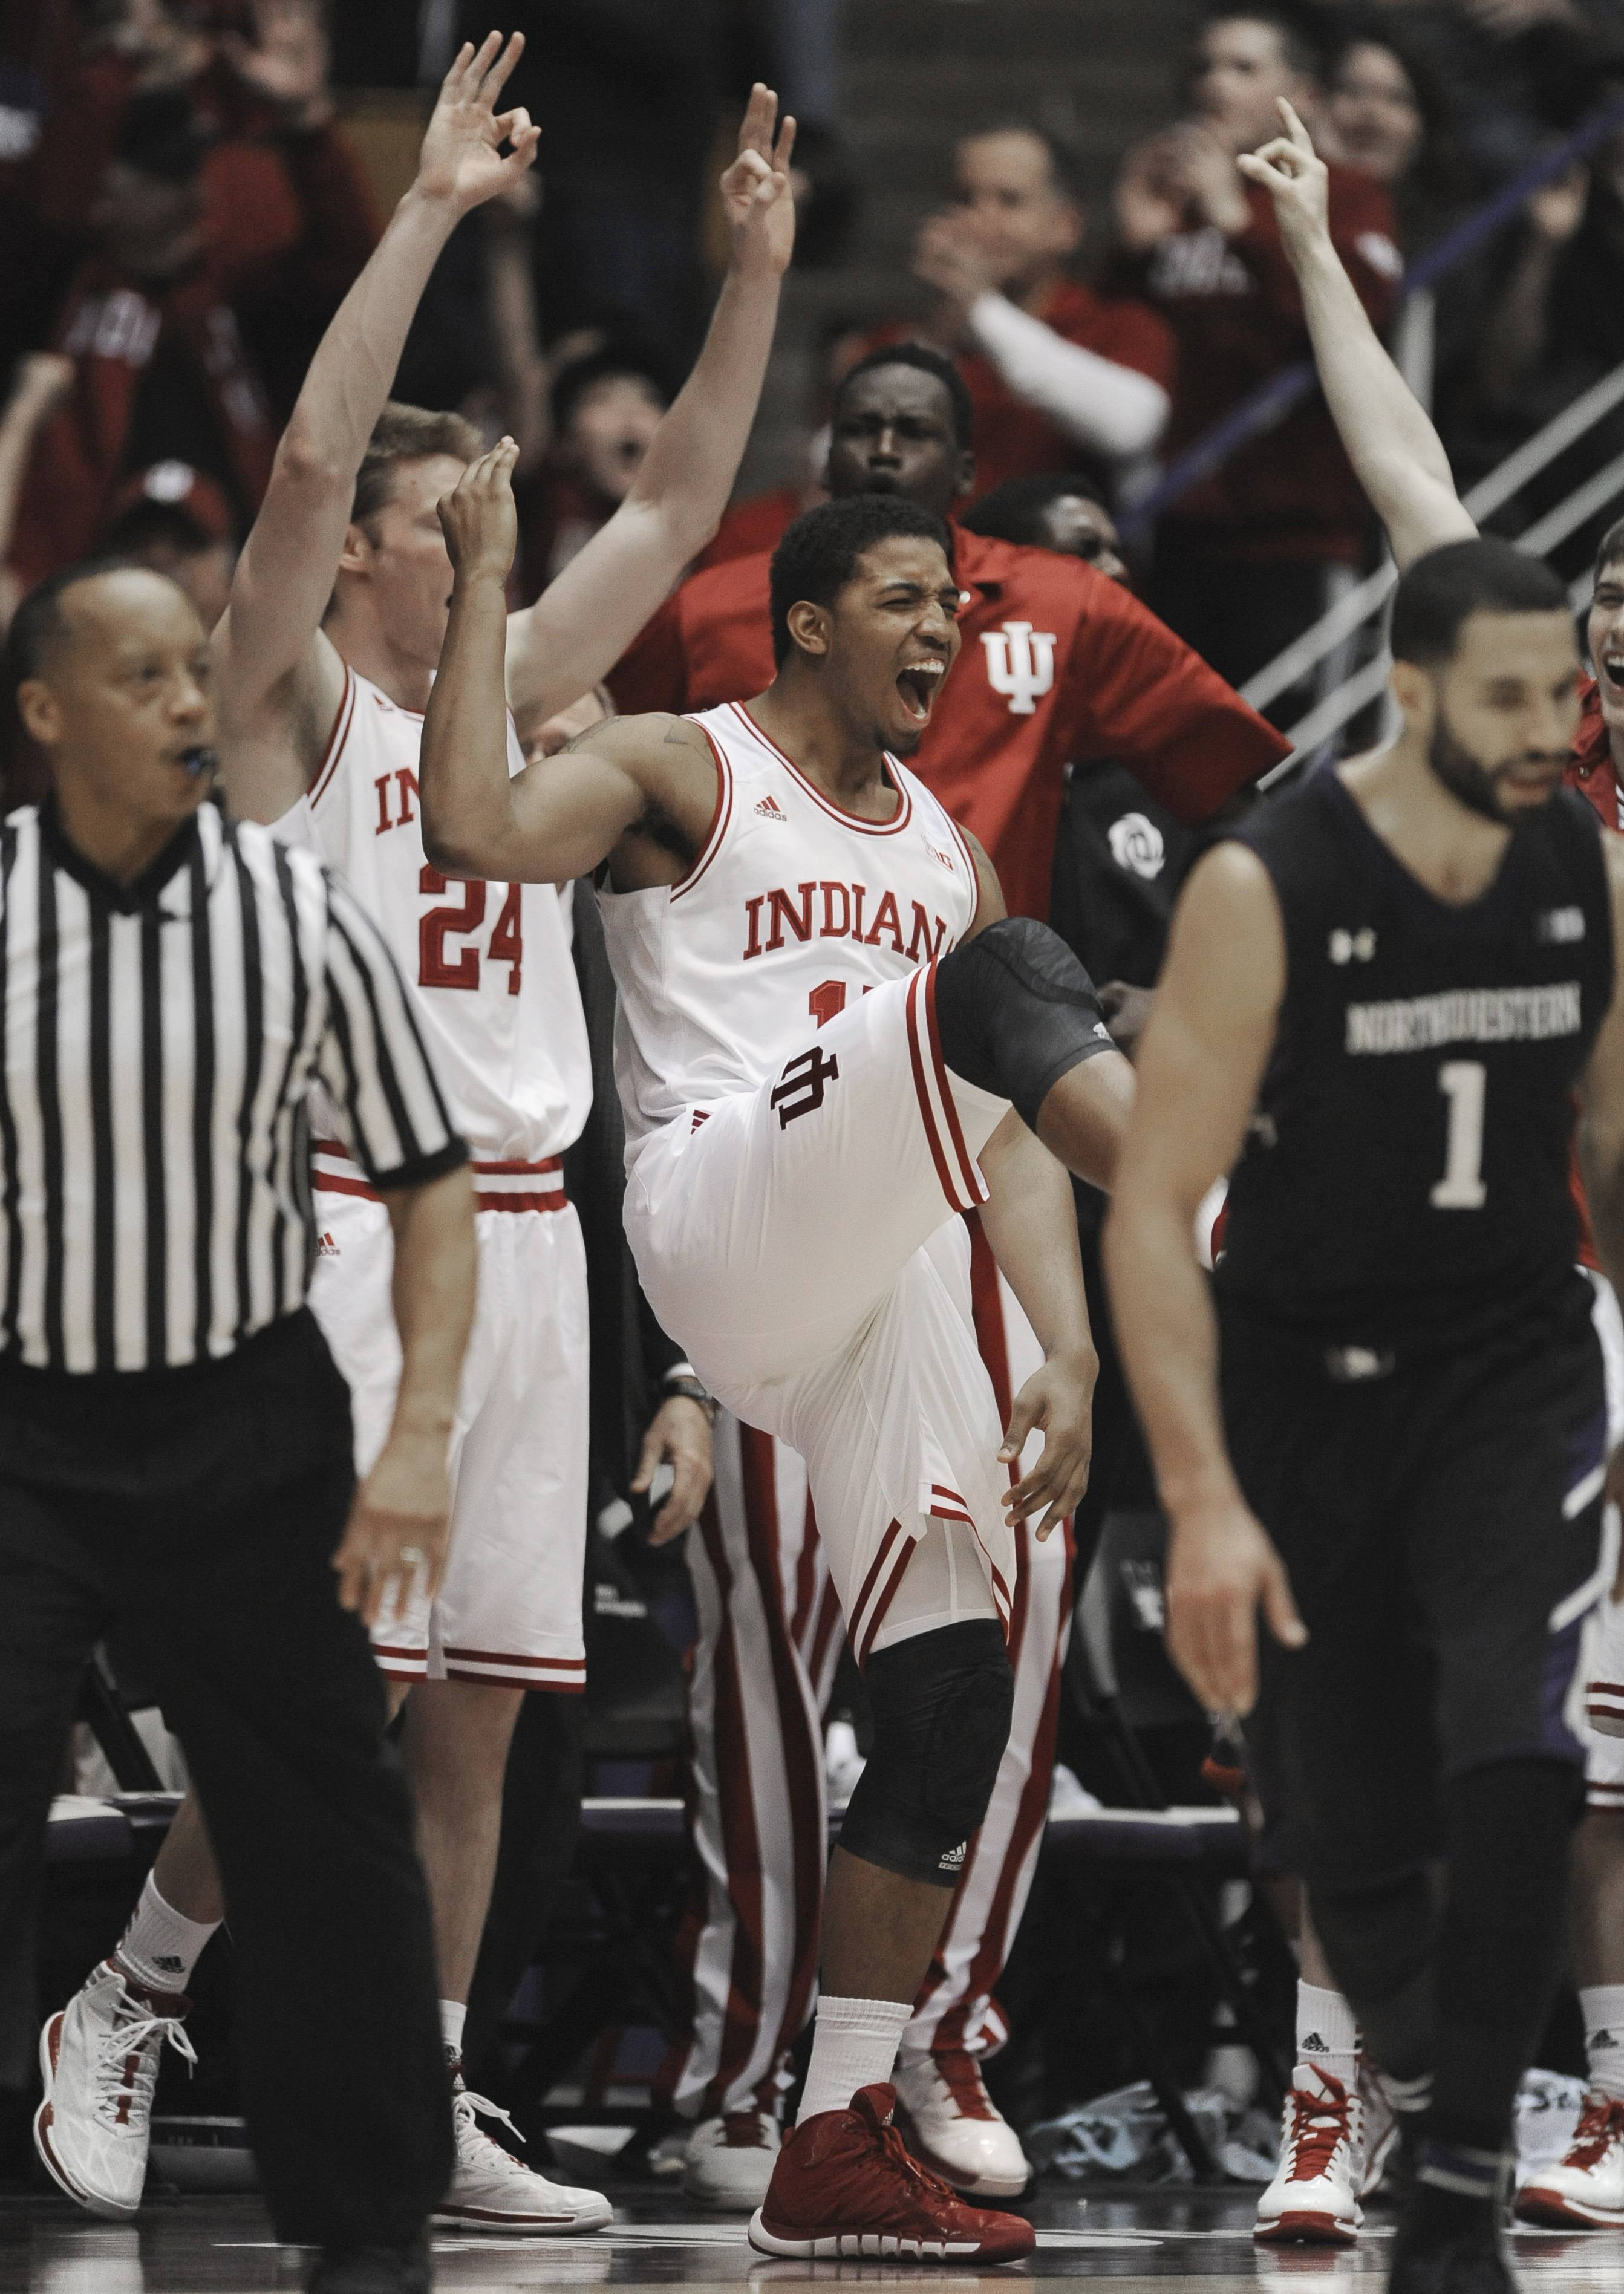 Indiana's Devin Davis (15) and the rest of the bench celebrate during the final seconds.